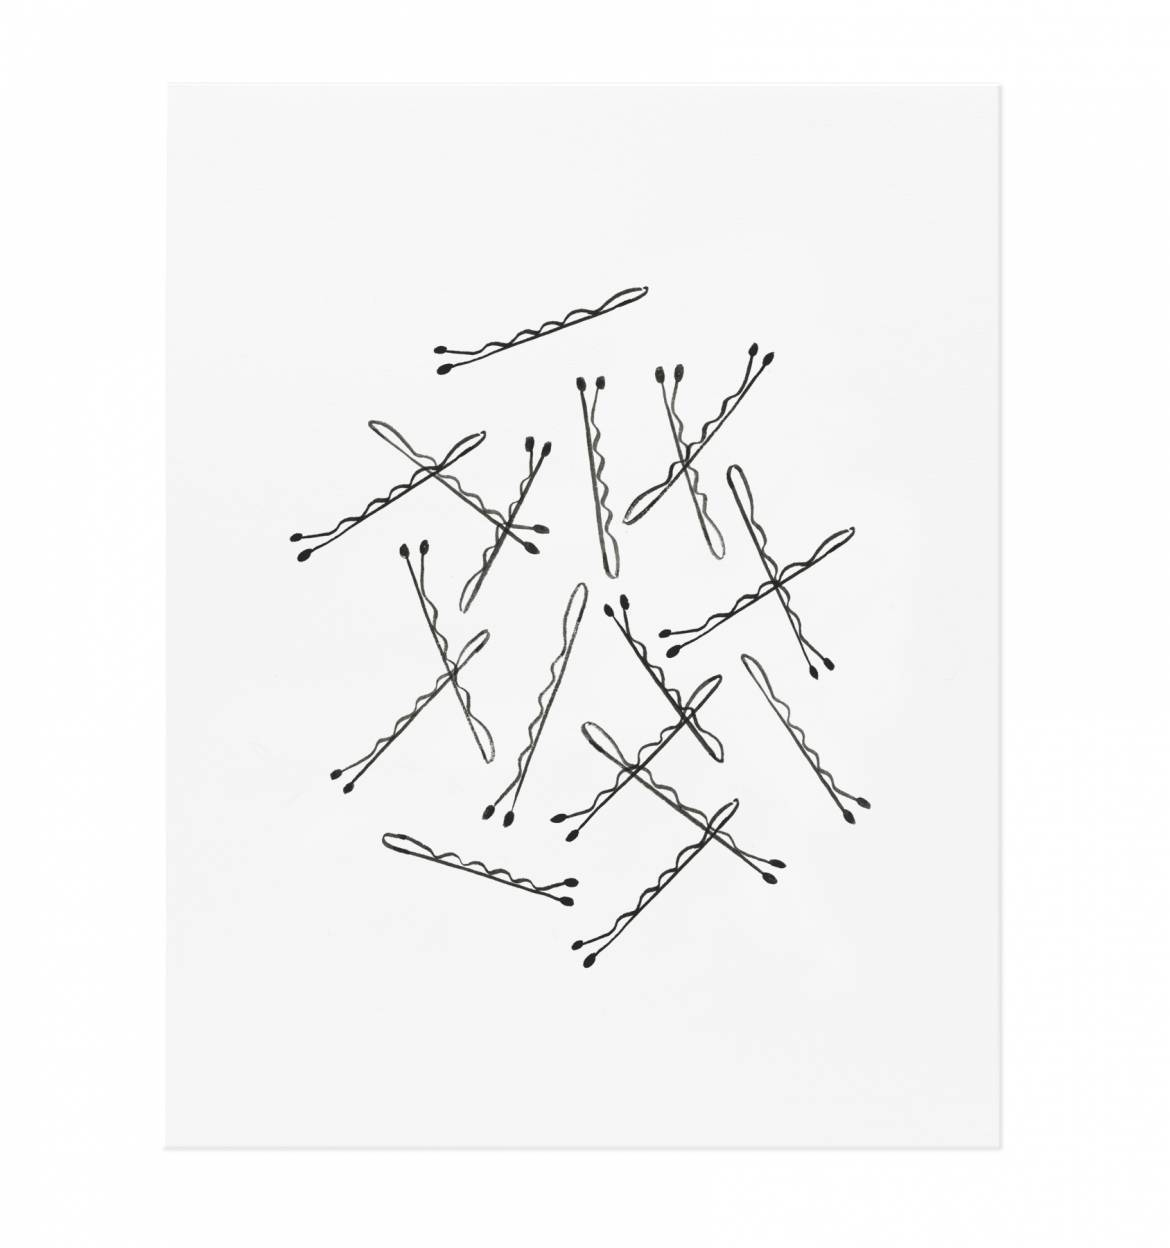 1170x1248 Bobby Pin Art Print By Rifle Paper Co. Made In Usa